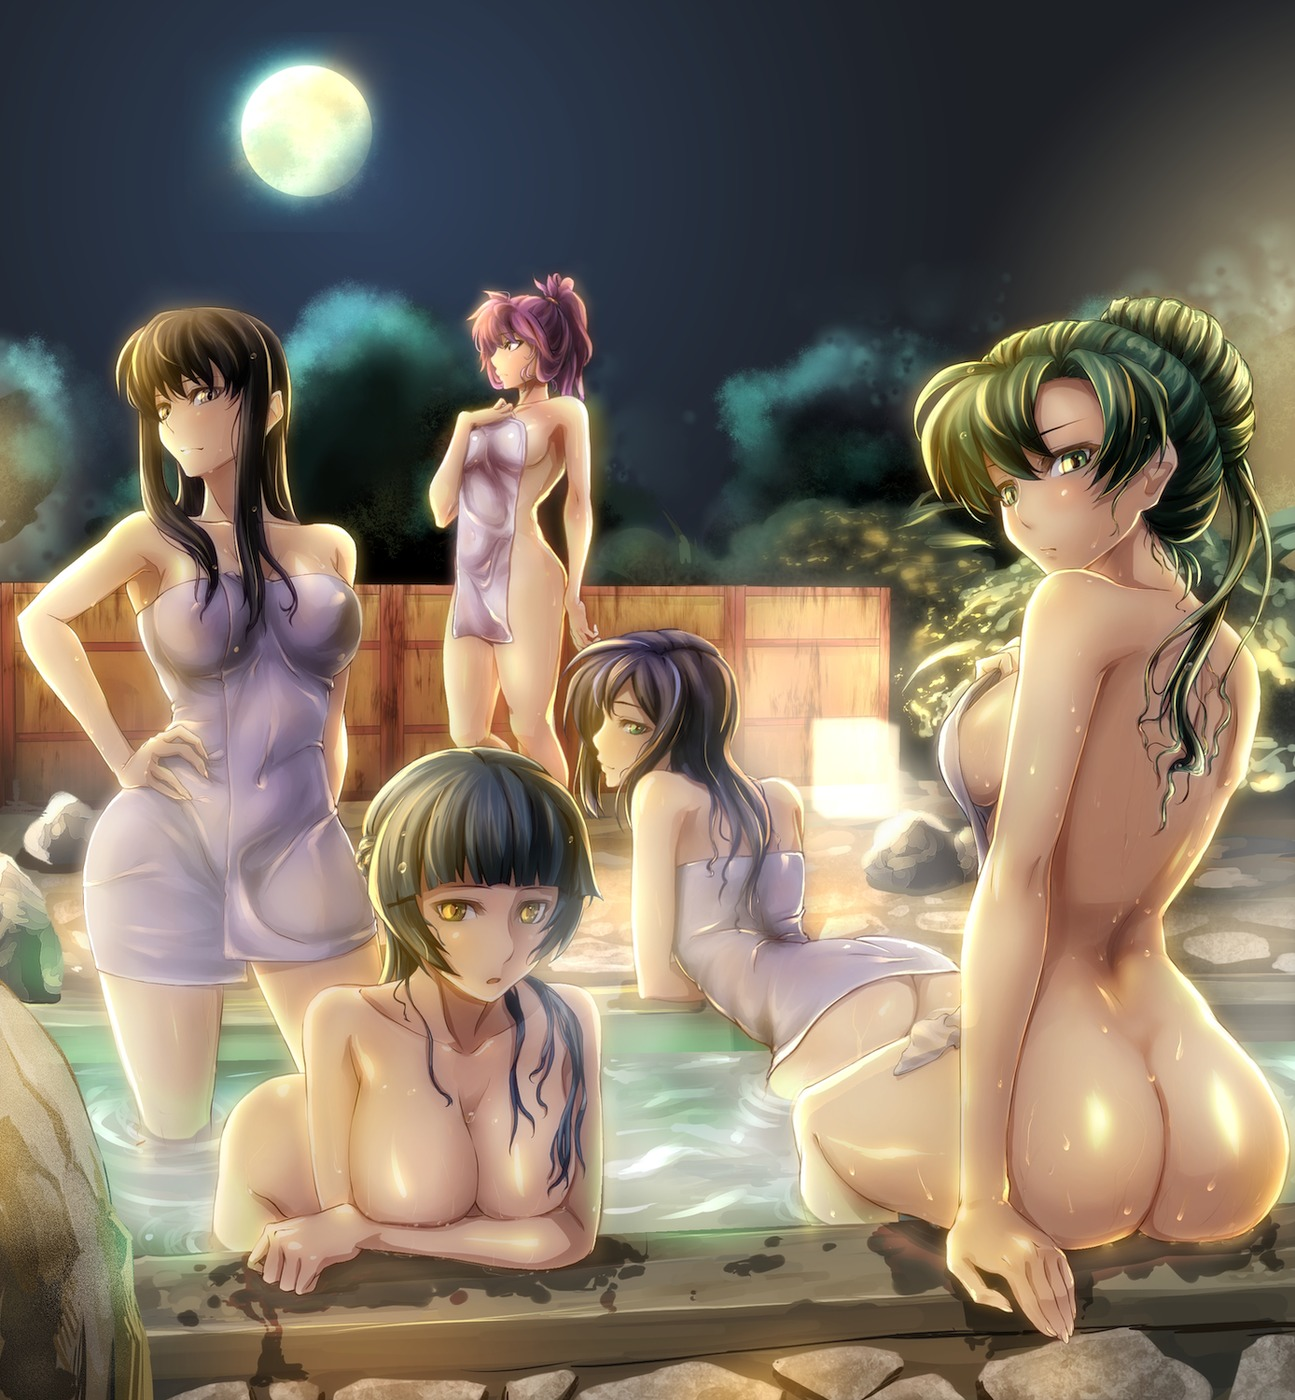 Final, sorry, Nude fire emblem characters confirm. All